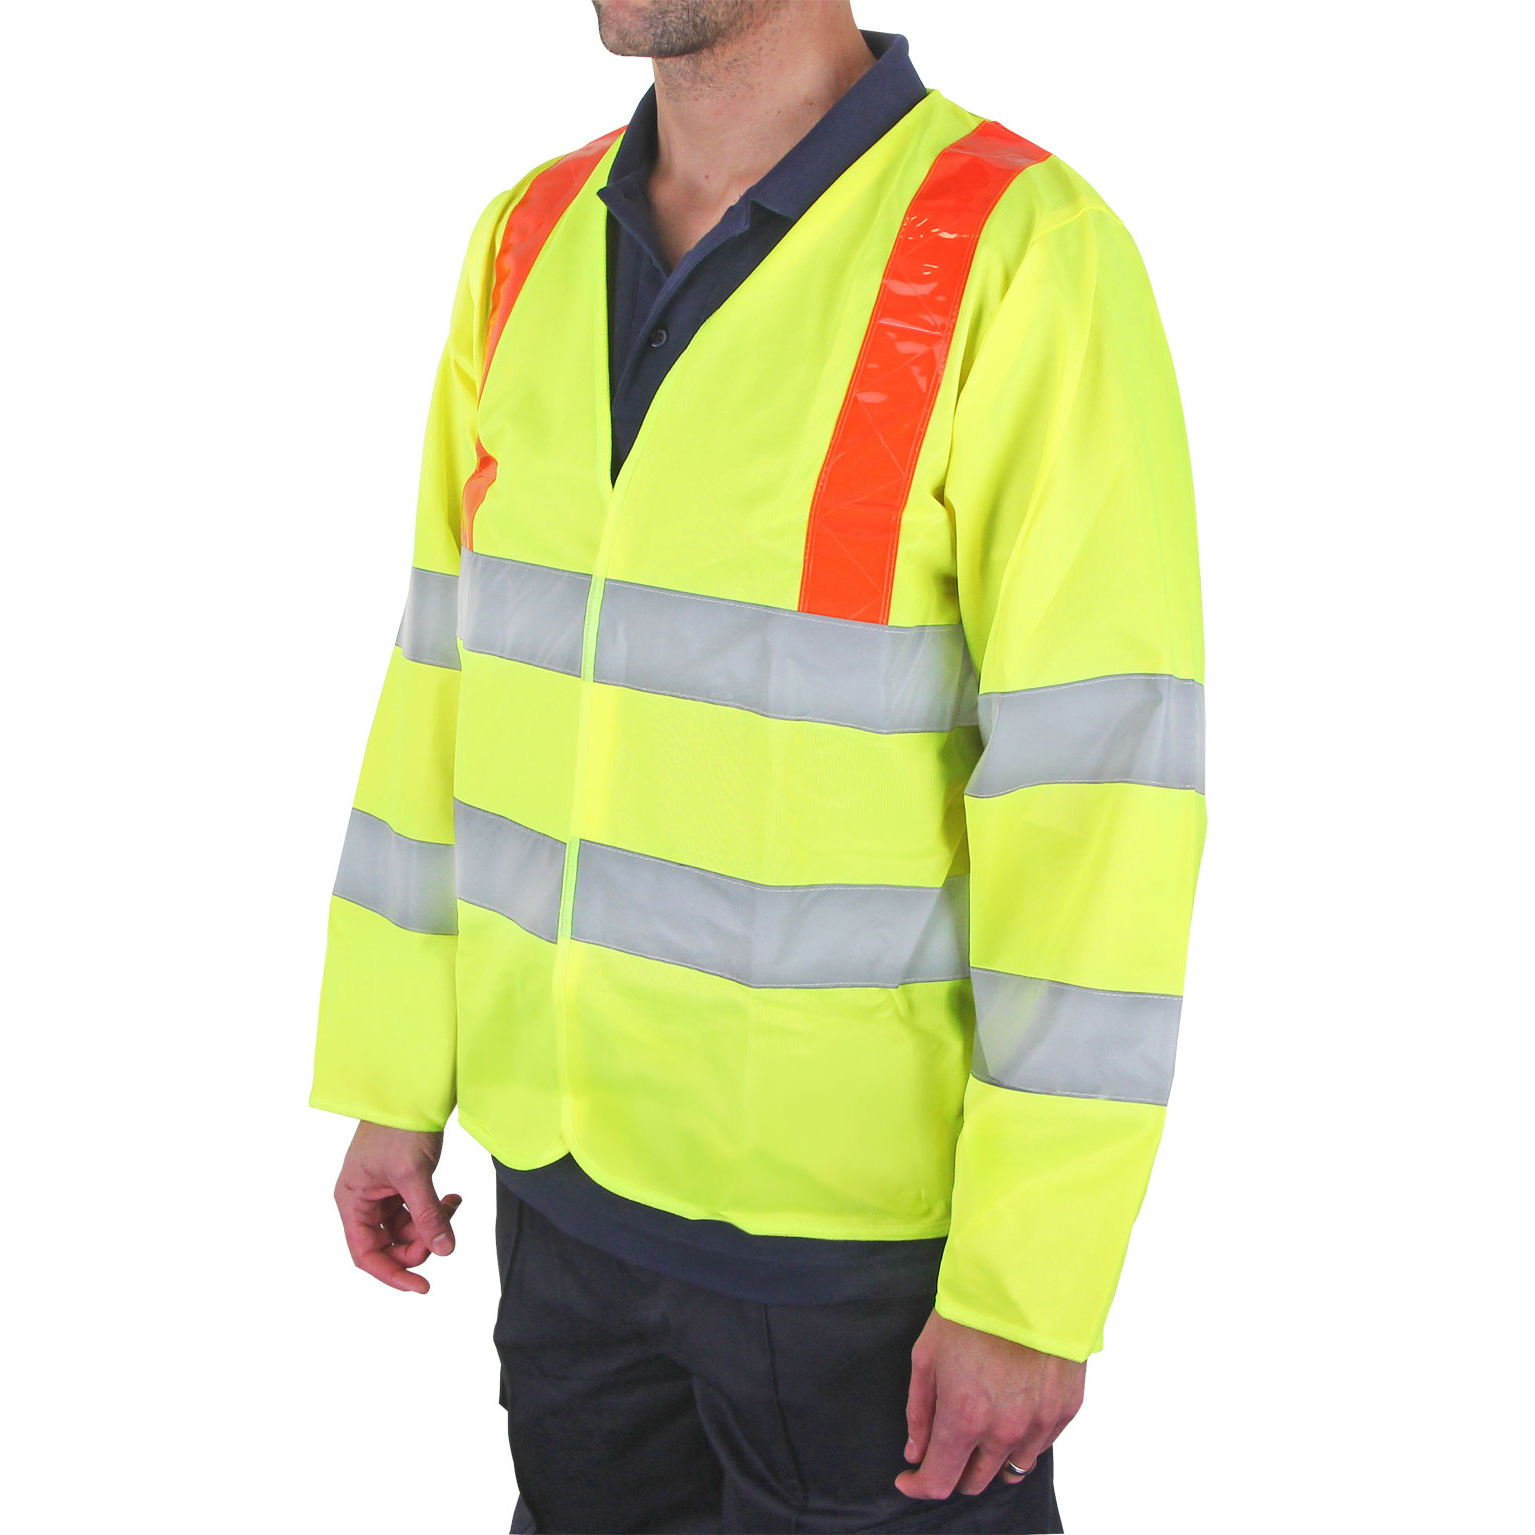 Bodywarmers B-Seen High Visibility Long Sleeved Jerkin Medium Saturn Yellow/Red Ref PKJENG(RT)M *Upto 3 Day Leadtime*